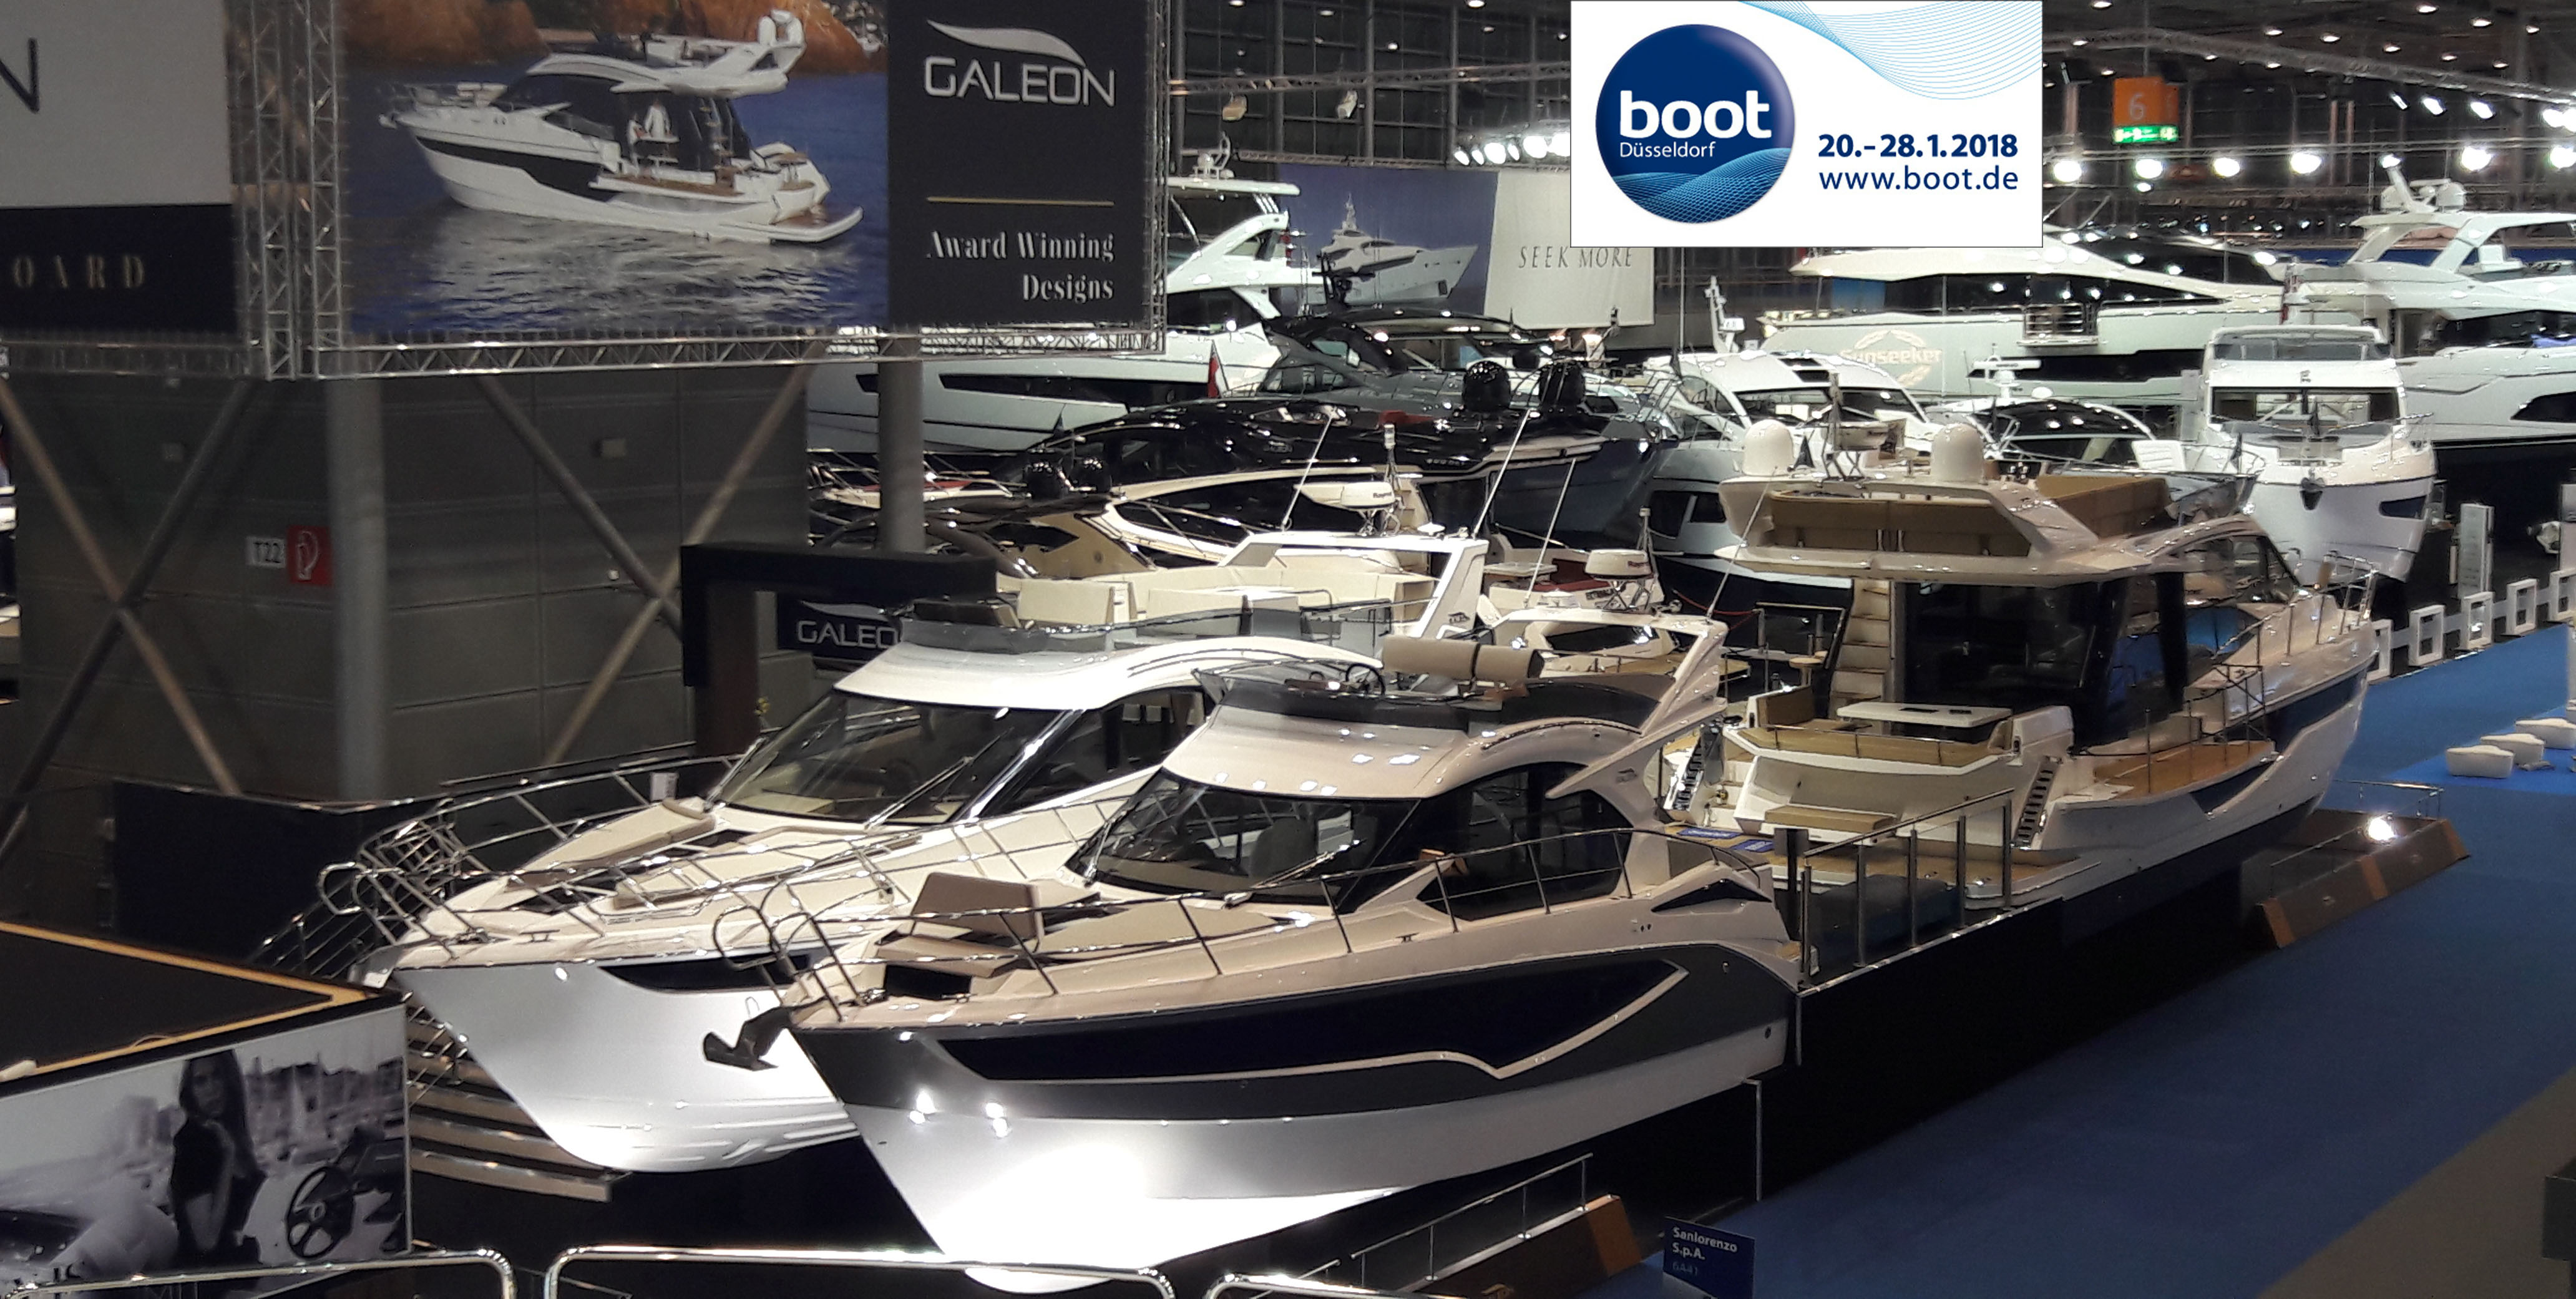 Galeon at boot Dusseldorf